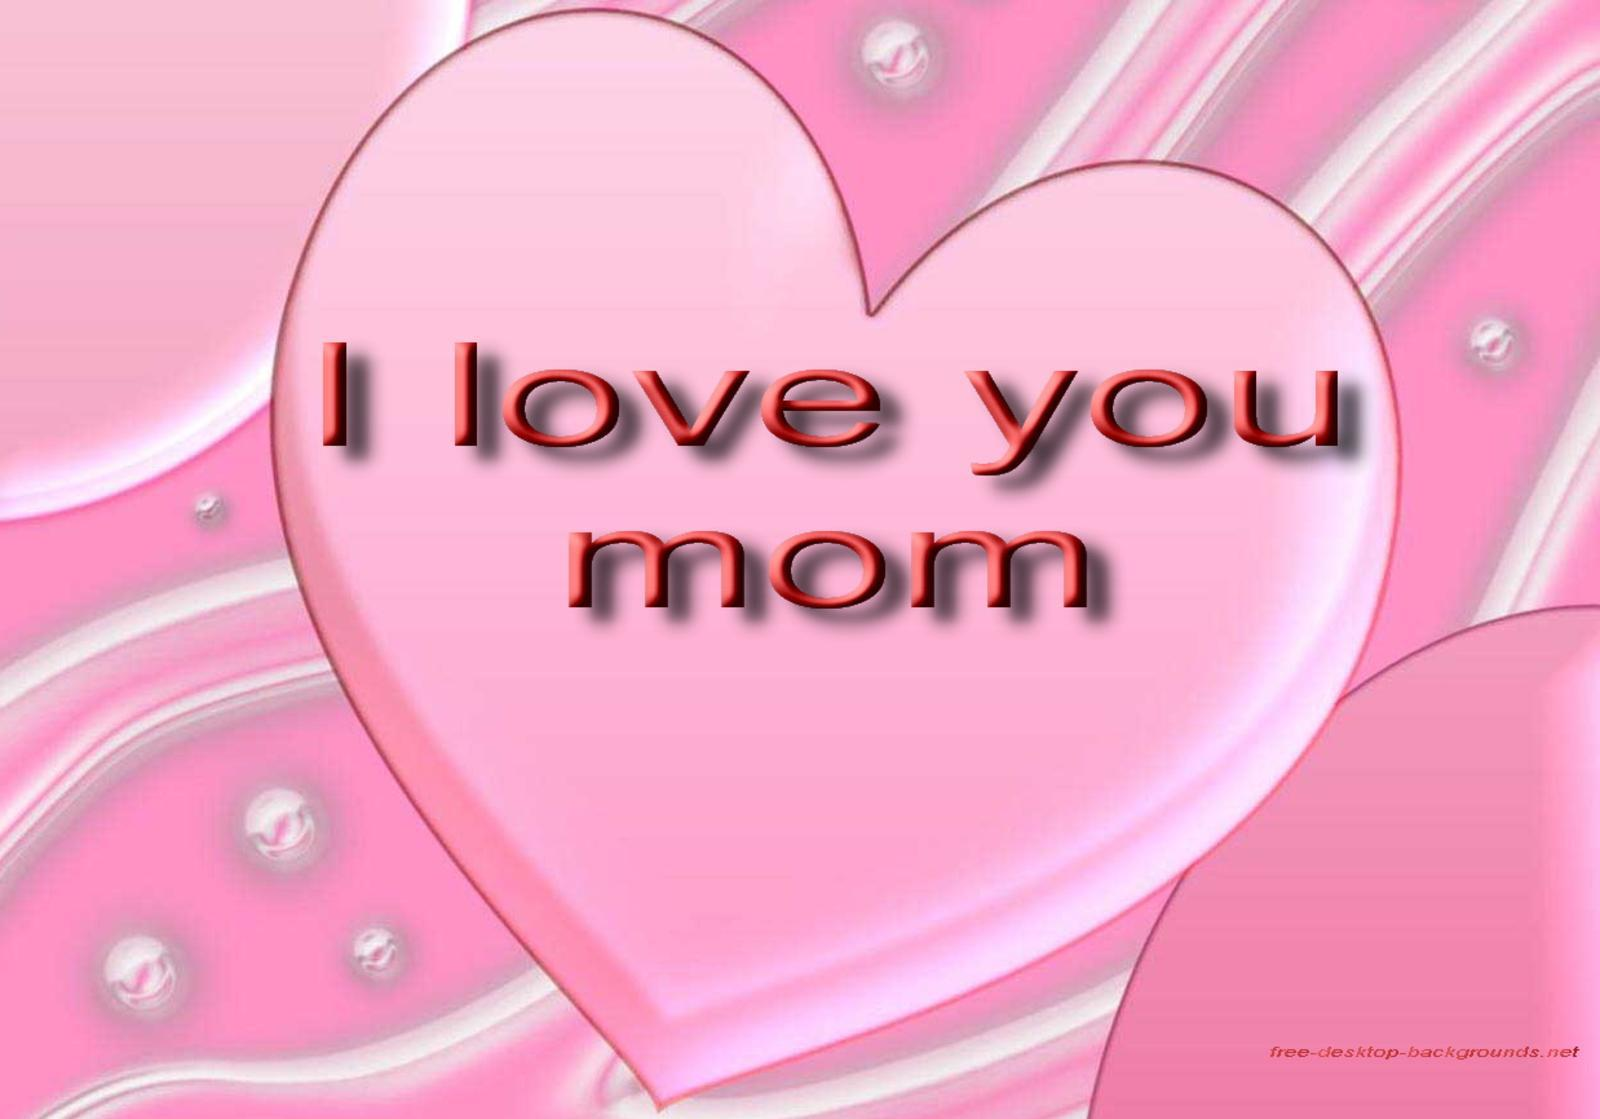 Wallpaper I Love You Mom : I Love You Mom Desktop Wallpapers Desktop Background Wallpapers